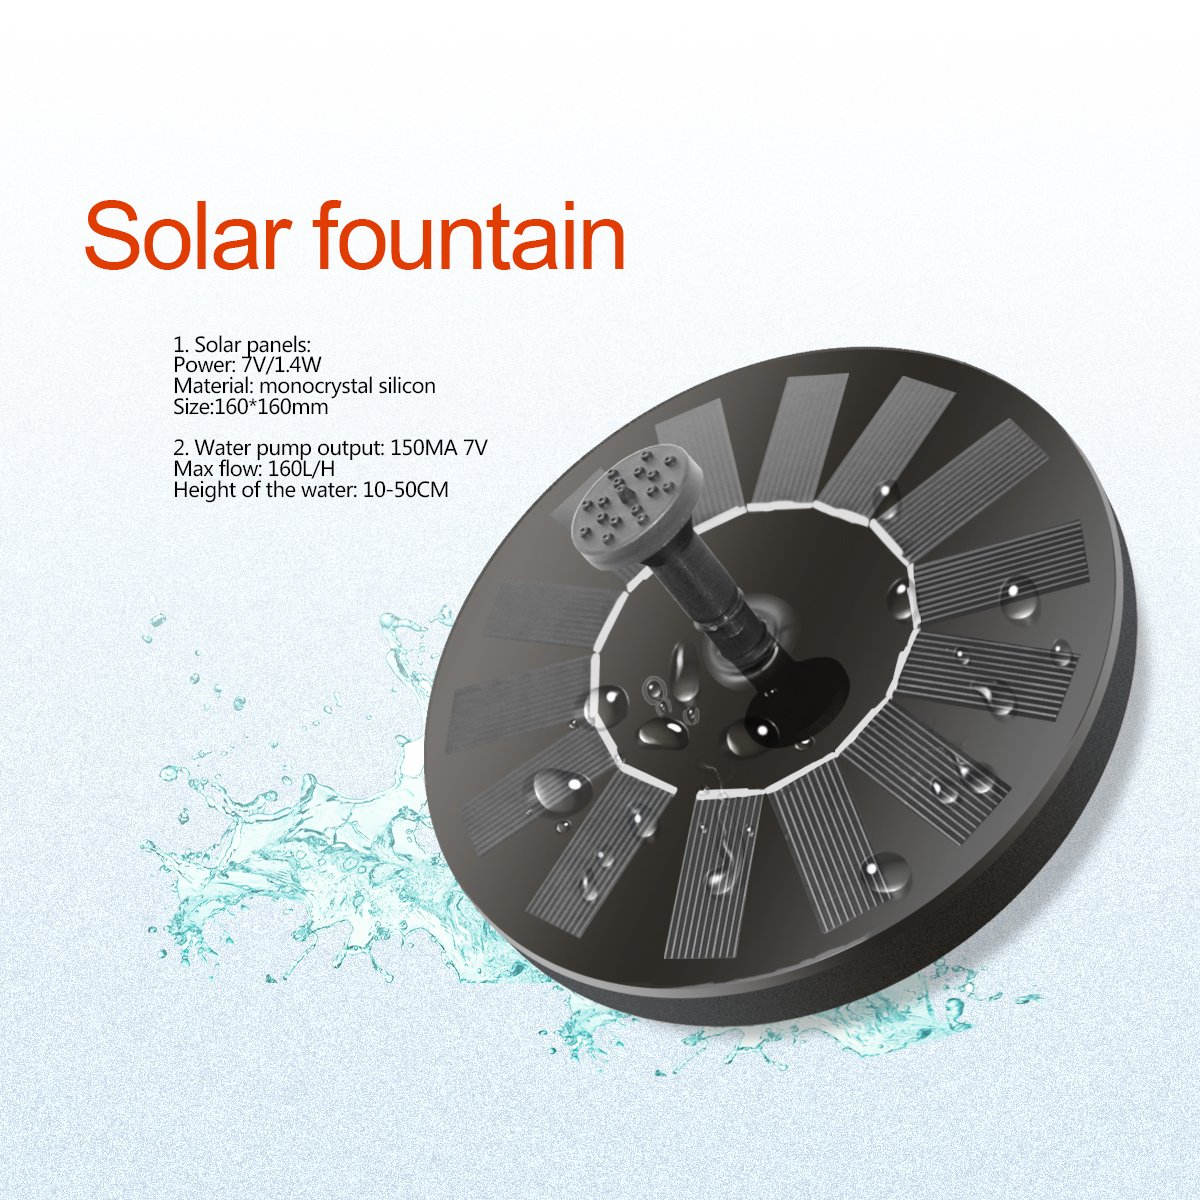 YmissL Solar Fountain, 2018 Upgraded Solar Powered Fountain Pump for Bird Bath, 1.4W Solar Panel Kit Water Pump,Outdoor Watering Submersible Pump for Pond, Pool, Garden, Fish Tank, Aquarium (Black3) by YmissL (Image #3)